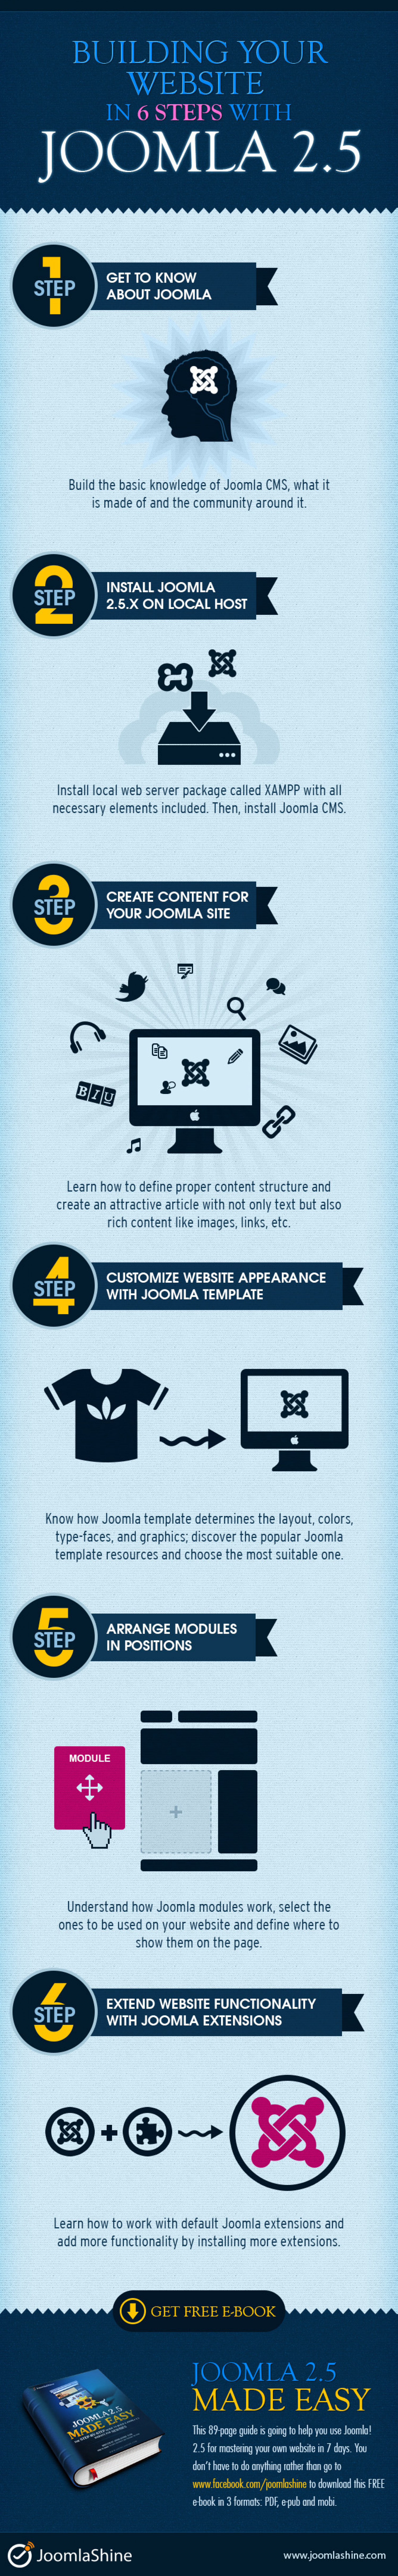 [Infographic] Building Your Website In 6 Steps With Joomla 2.5 Infographic